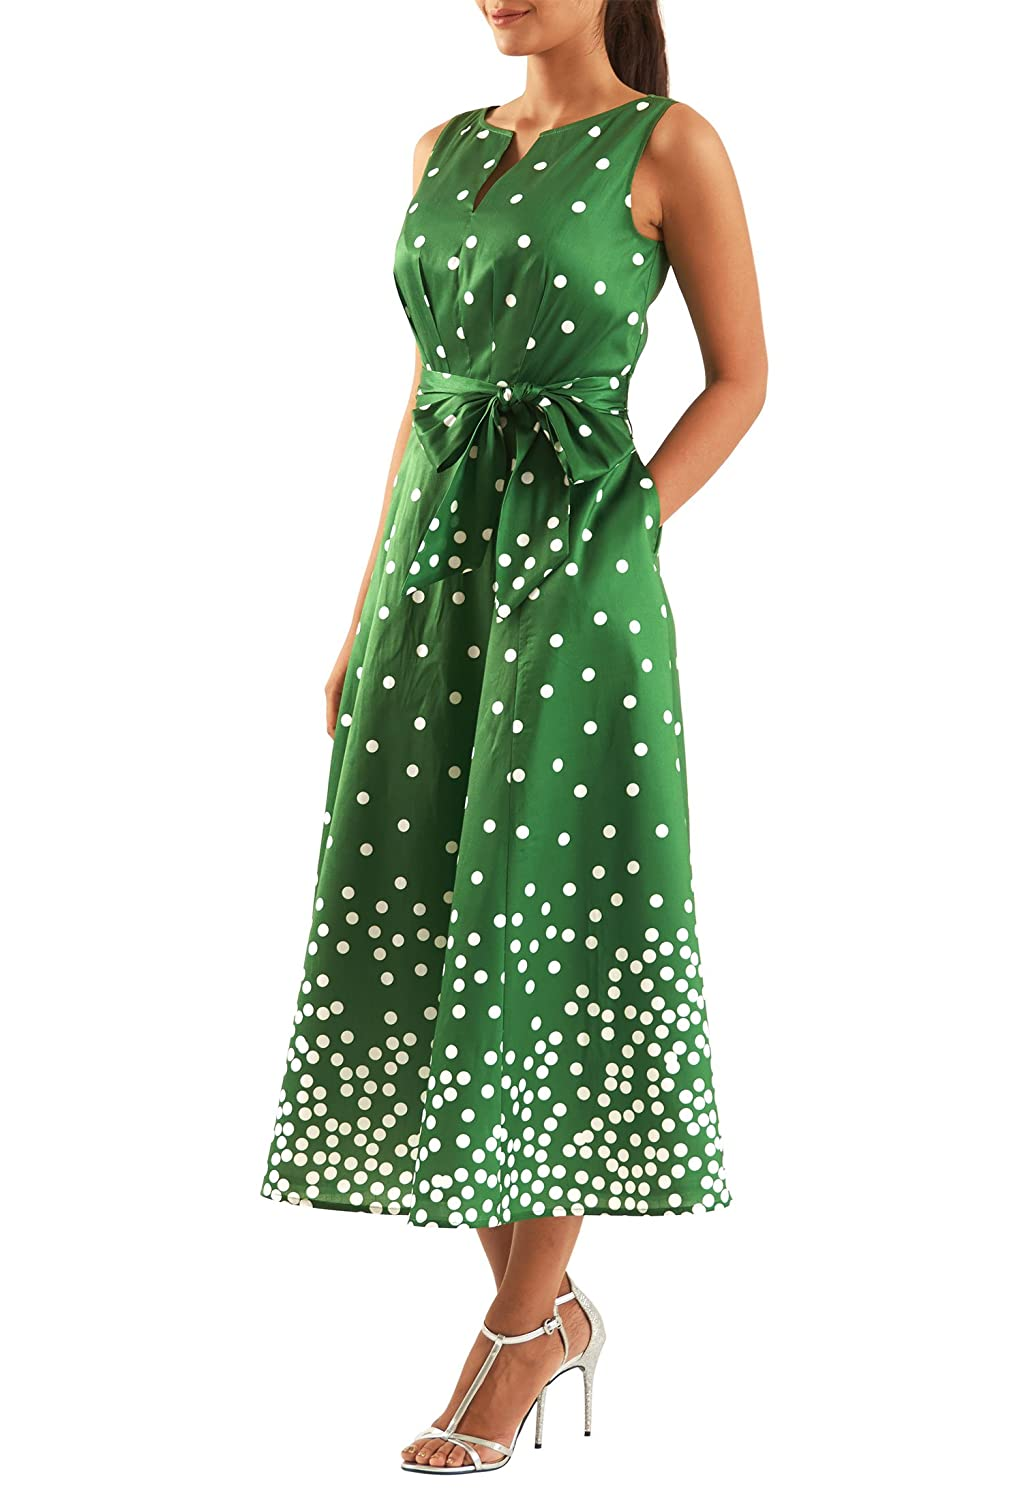 1930s Day Dresses, Afternoon Dresses History eShakti Womens Polka dot print dupioni midi dress $69.95 AT vintagedancer.com